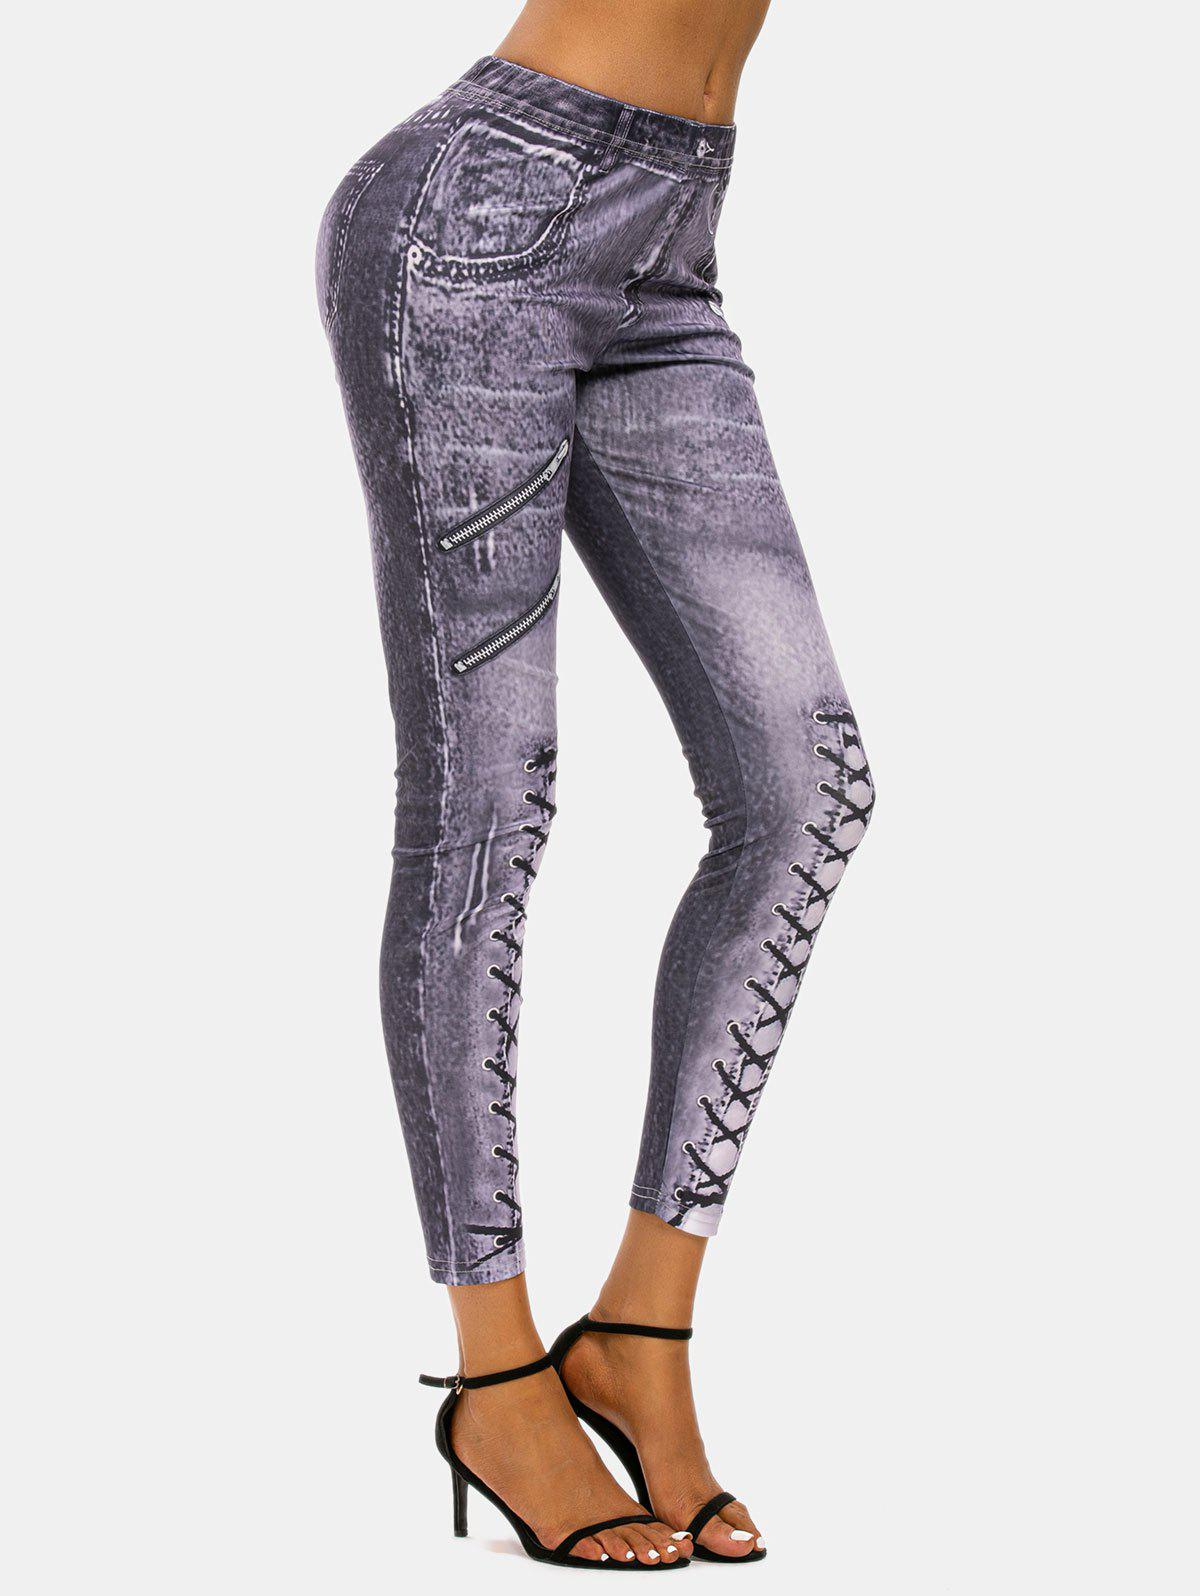 3D Lace-up Zip Print Skinny Jeggings - PURPLE XXL